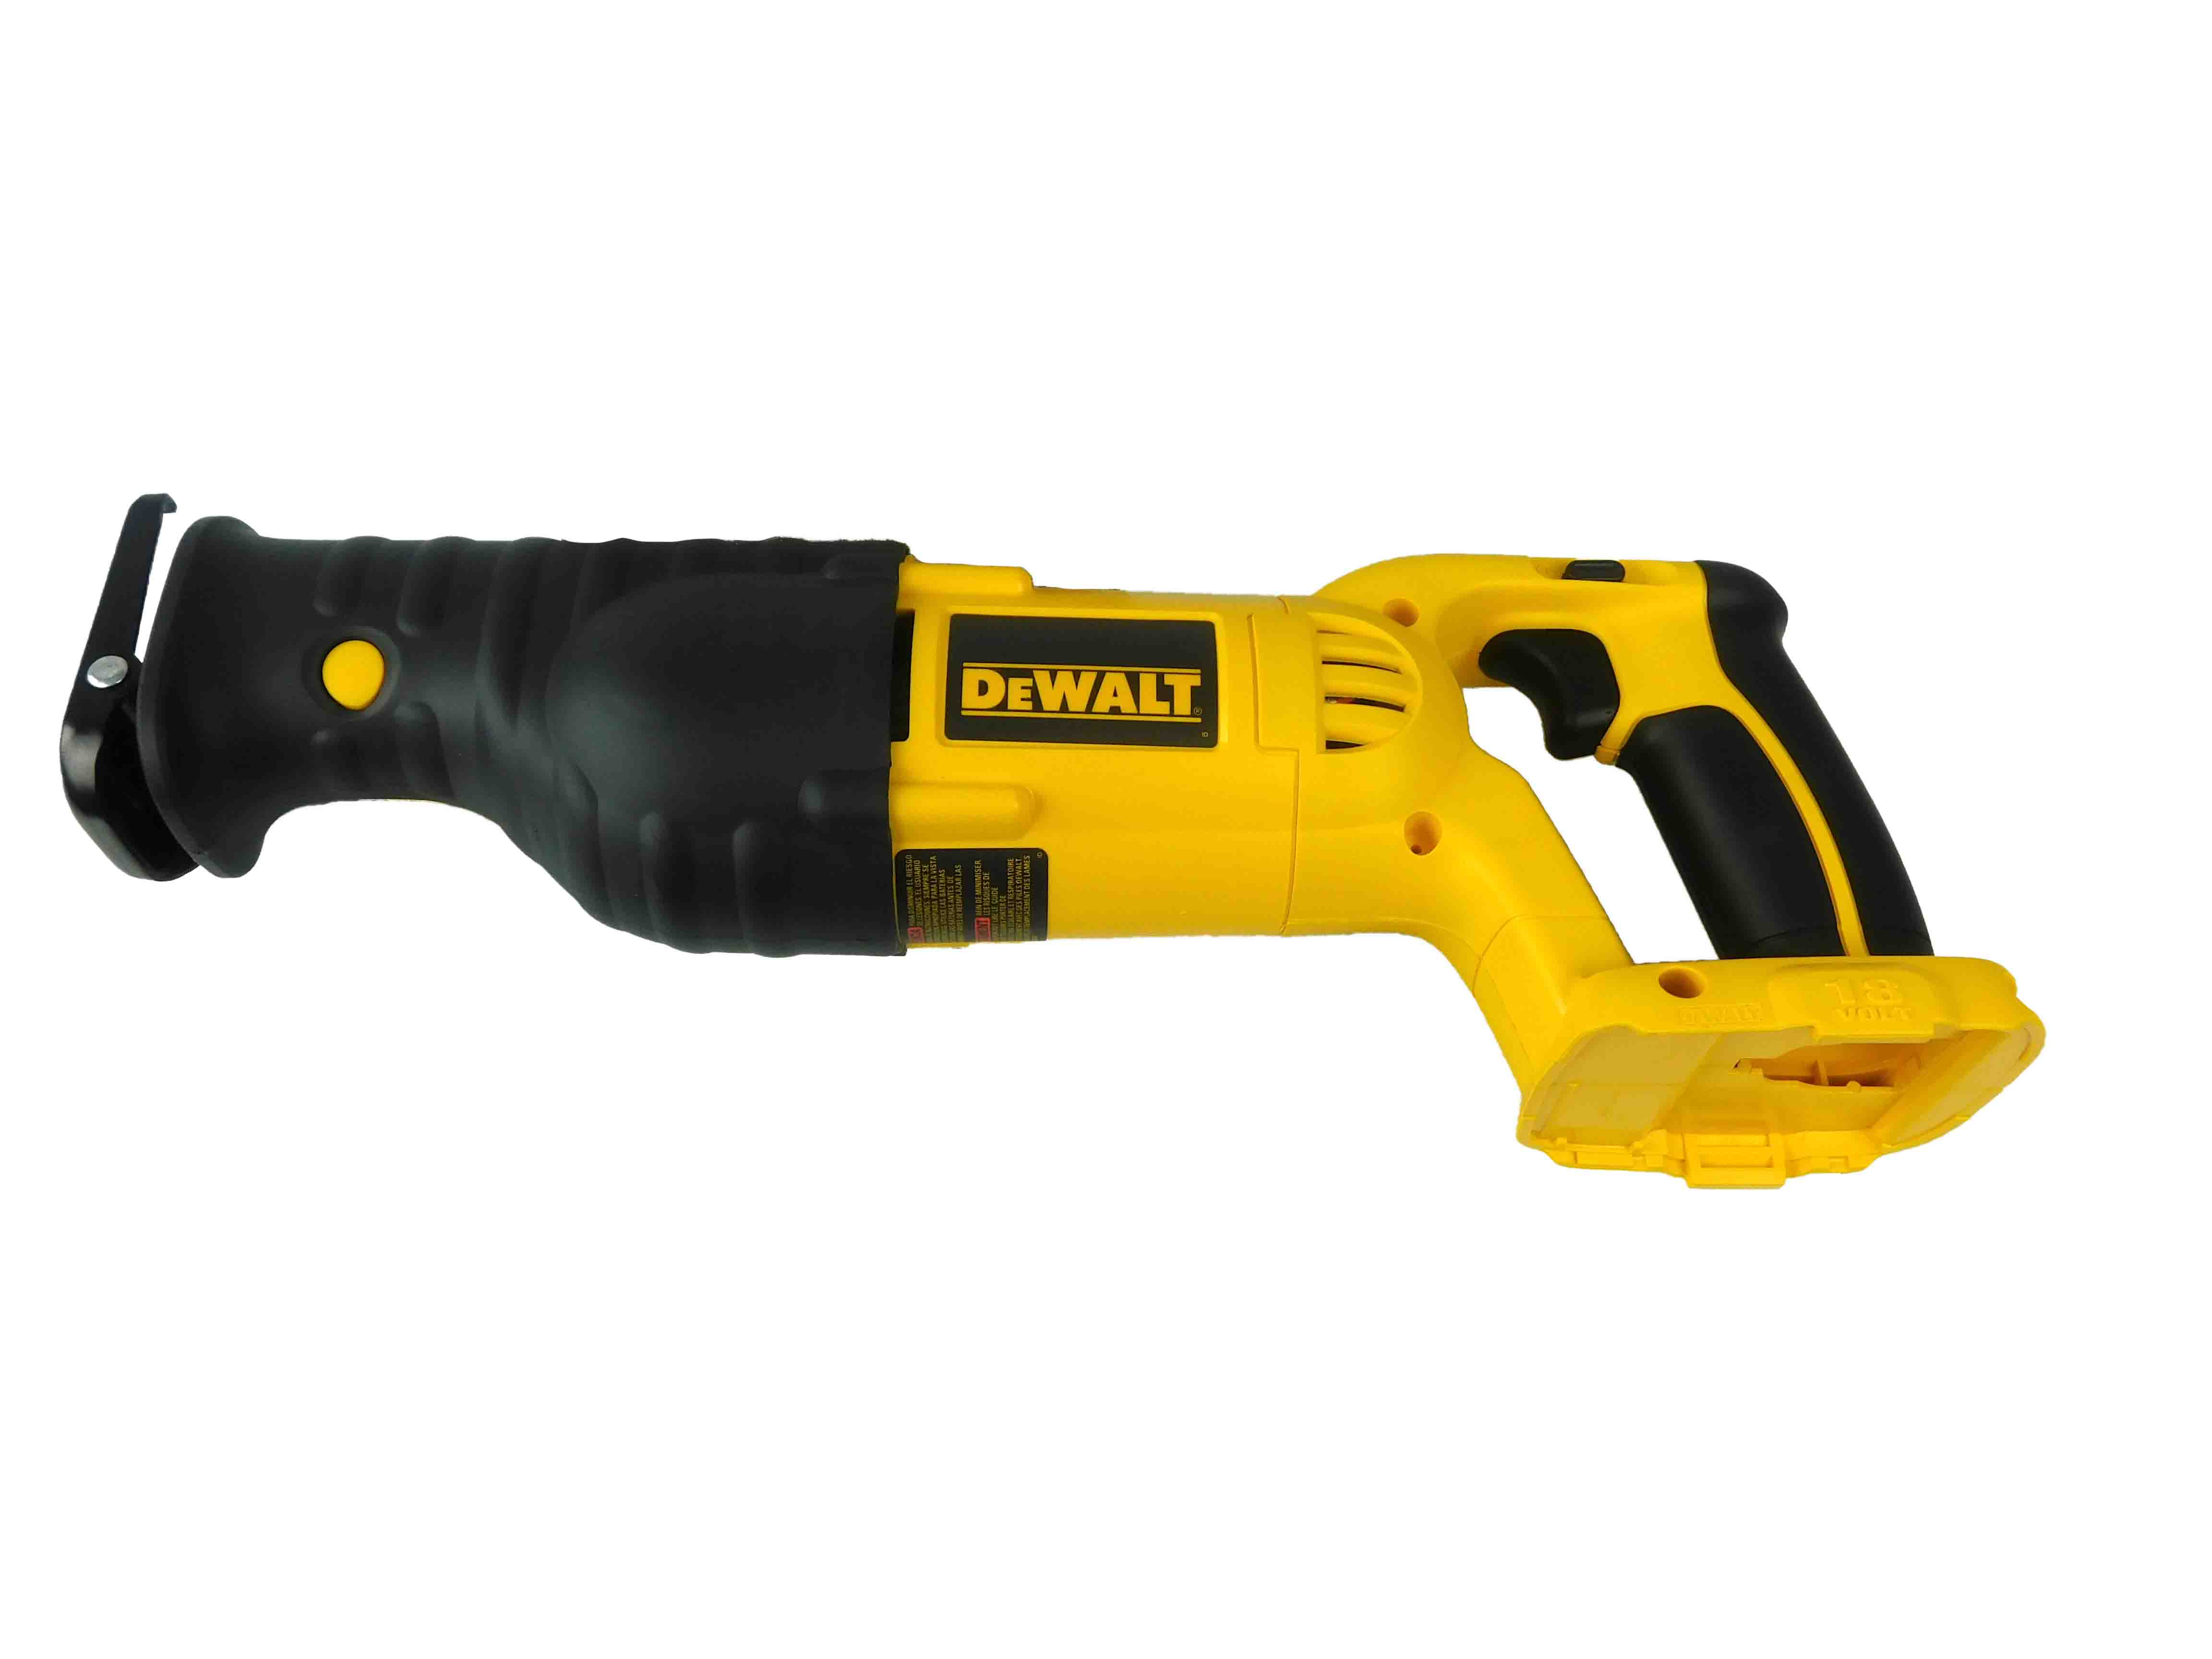 Dewalt-DC385-18V-Reciprocating-Sawzall-Variable-Speed-Cordless-Bare-Tool-image-4